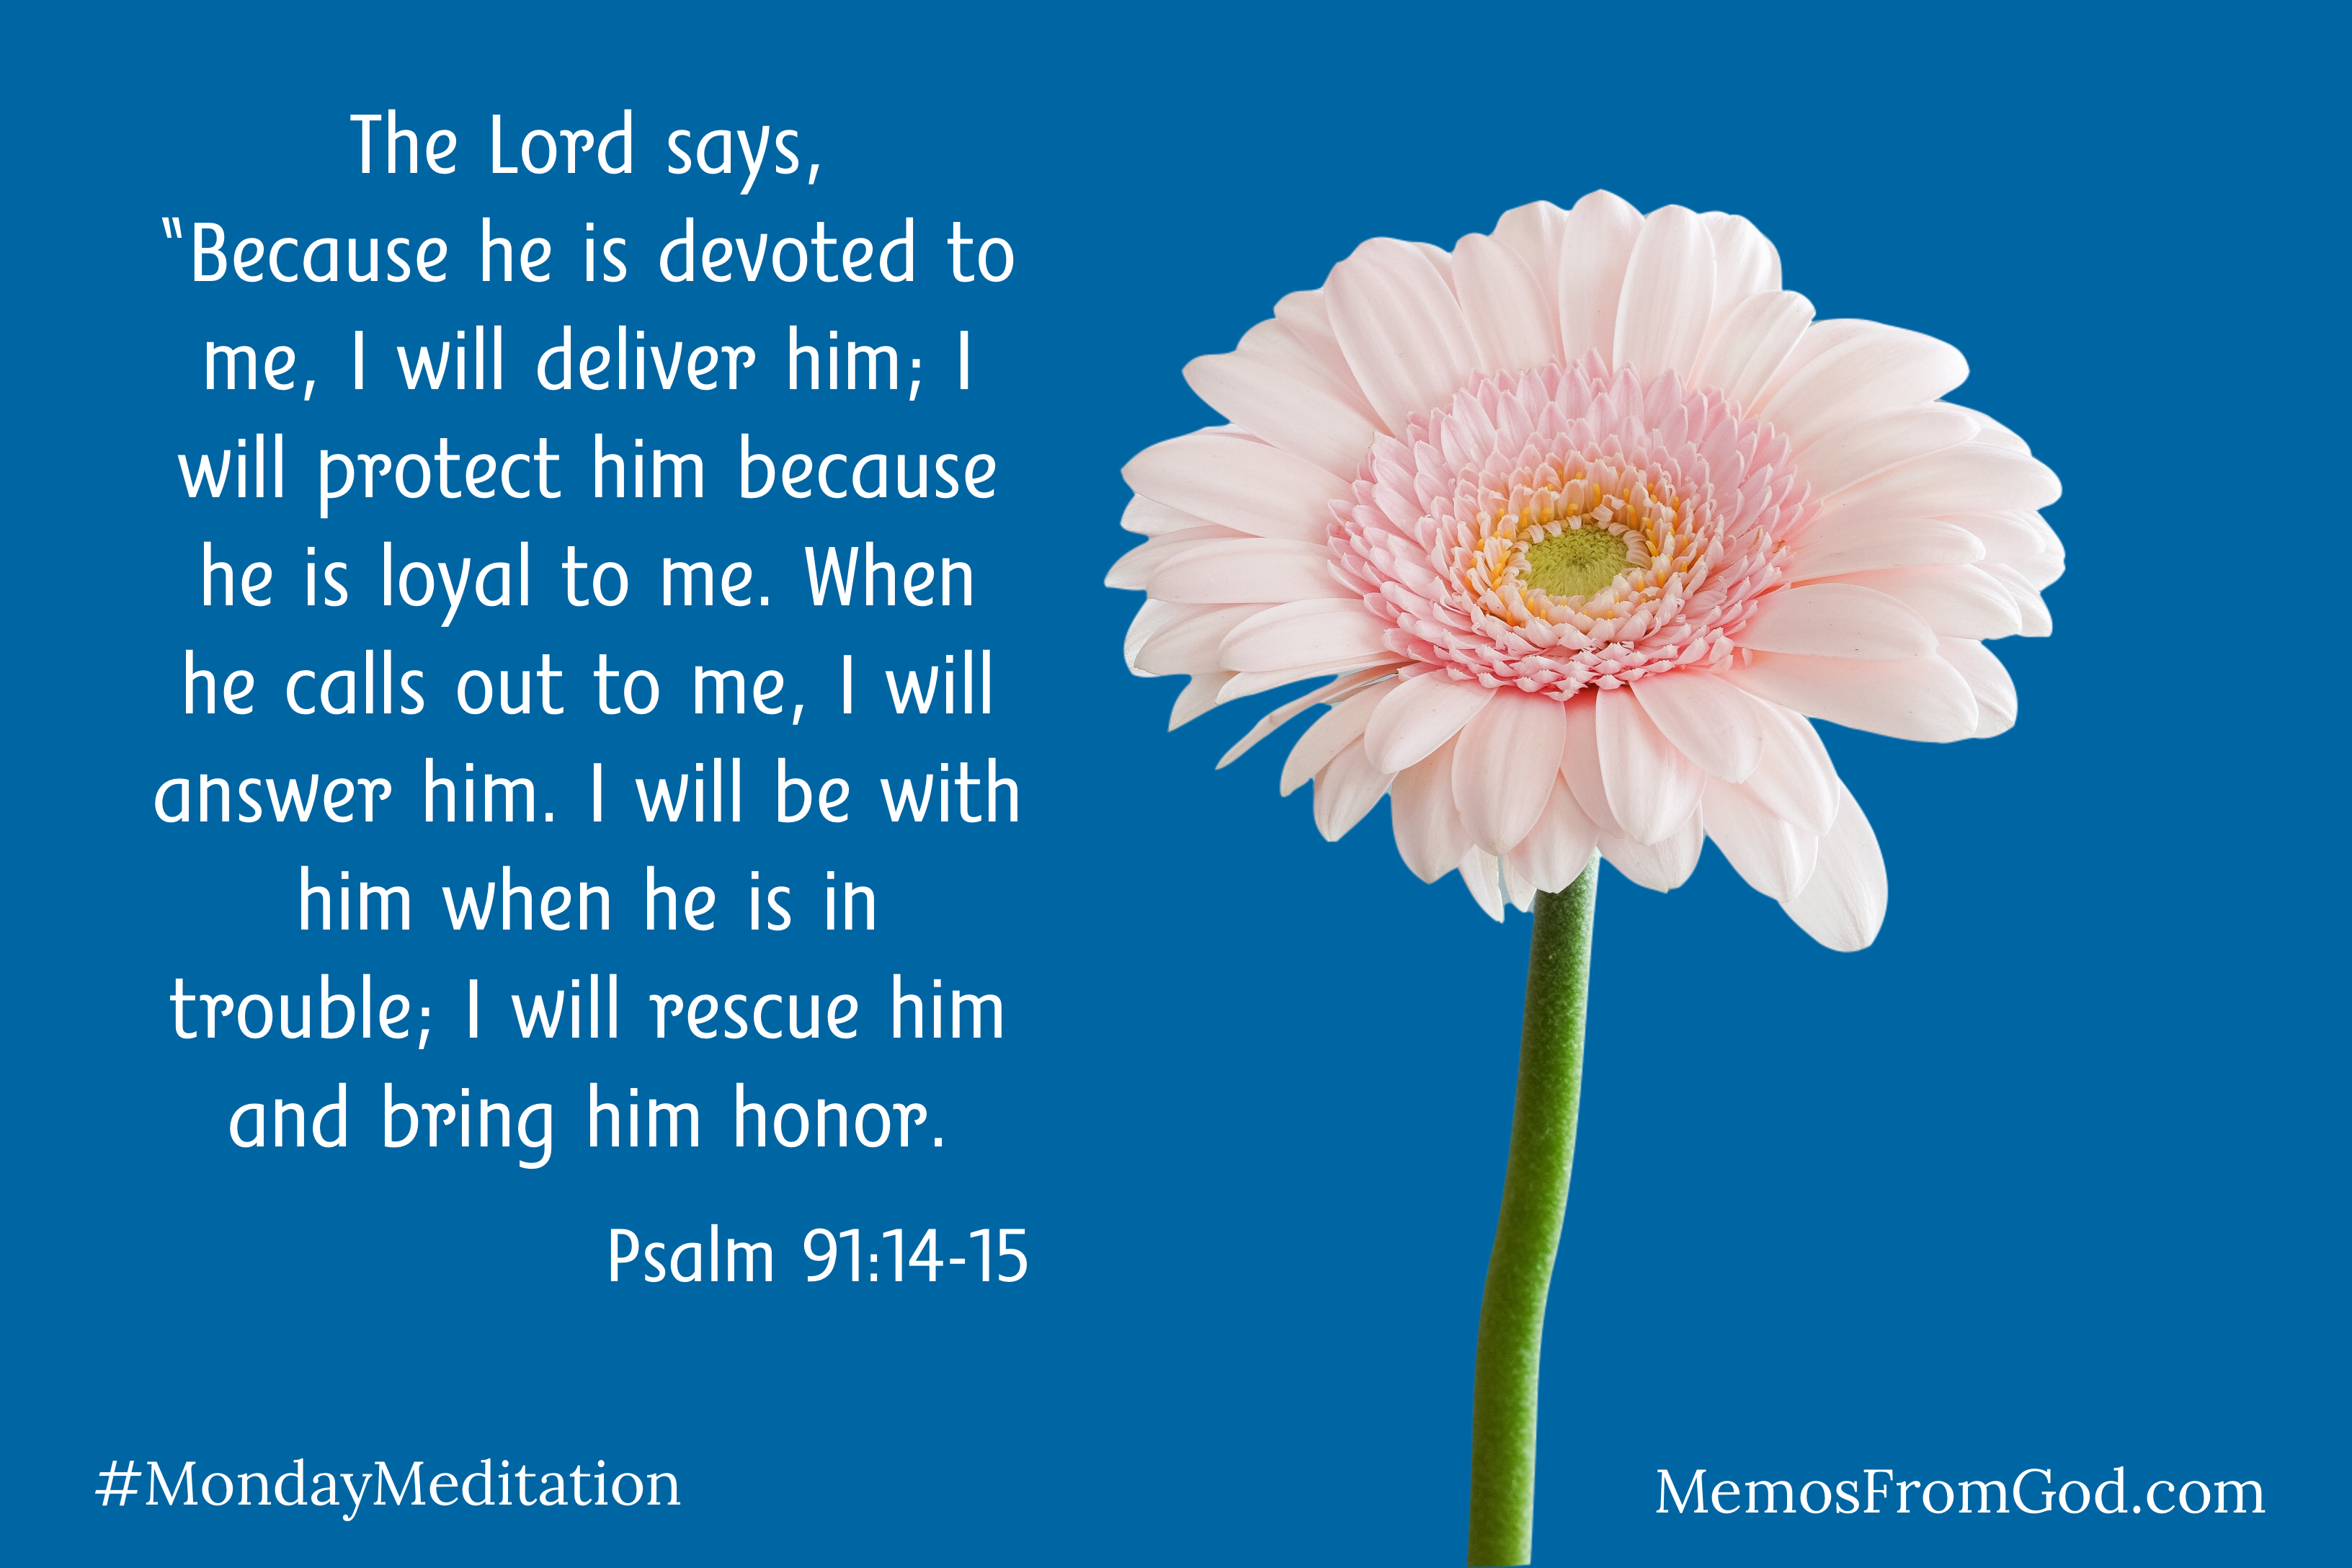 """A single light pink Gerber daisy on a medium blue background. Caption: The Lord says, """"Because he is devoted to me, I will deliver him; I will protect him because he is loyal to me. When he calls out to me, I will answer him. I will be with him when he is in trouble; I will rescue him and bring him honor. Psalm 91:14-15"""